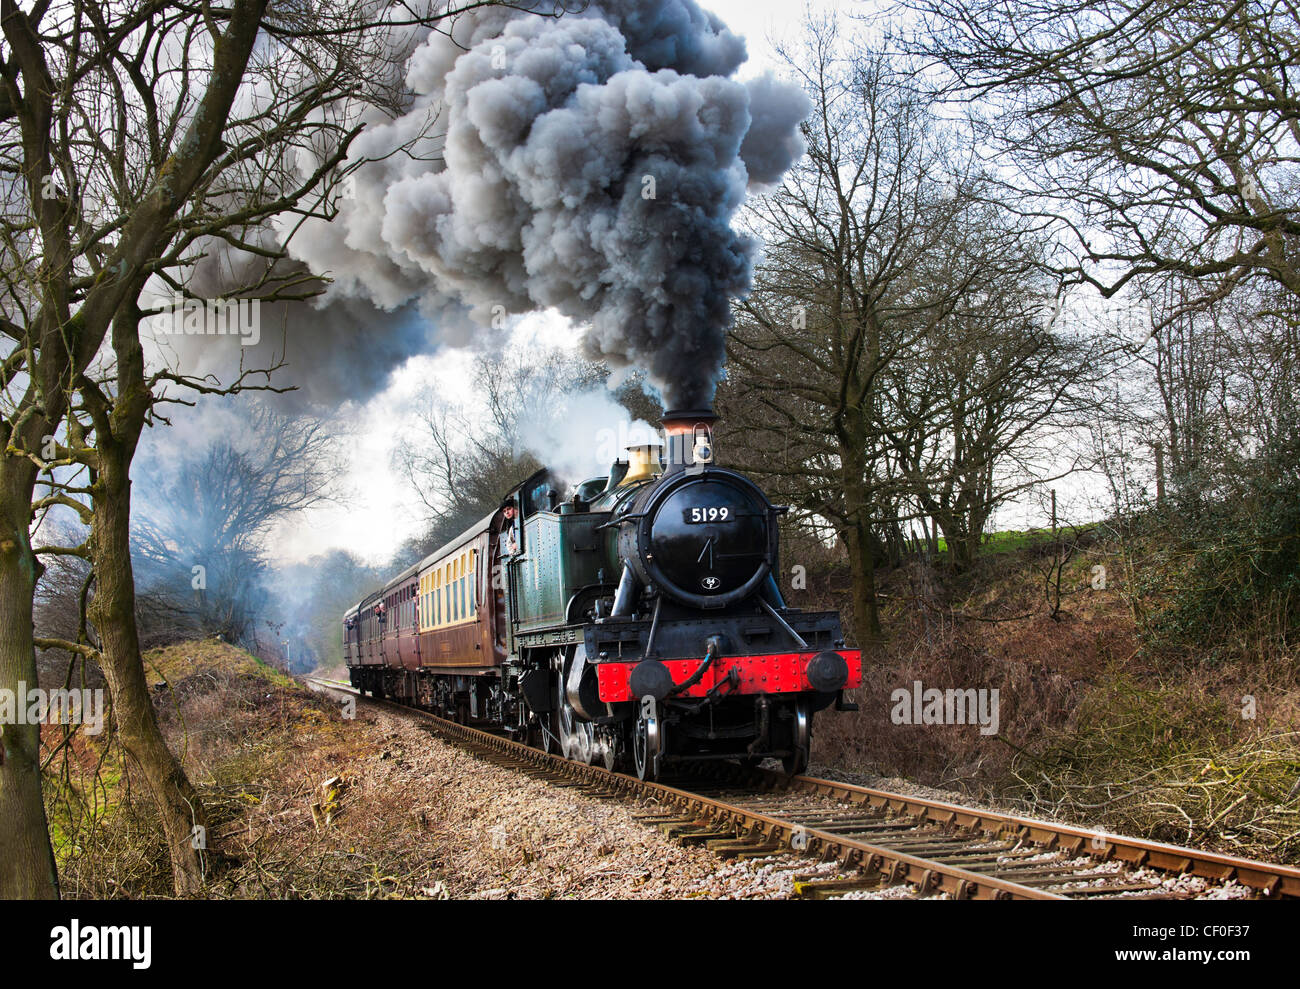 Ex-GWR Prairie Tank loco No 5199 pulls a train out of Leekbrook towards Cauldon Lowe on The Churnet Valley Railway. - Stock Image